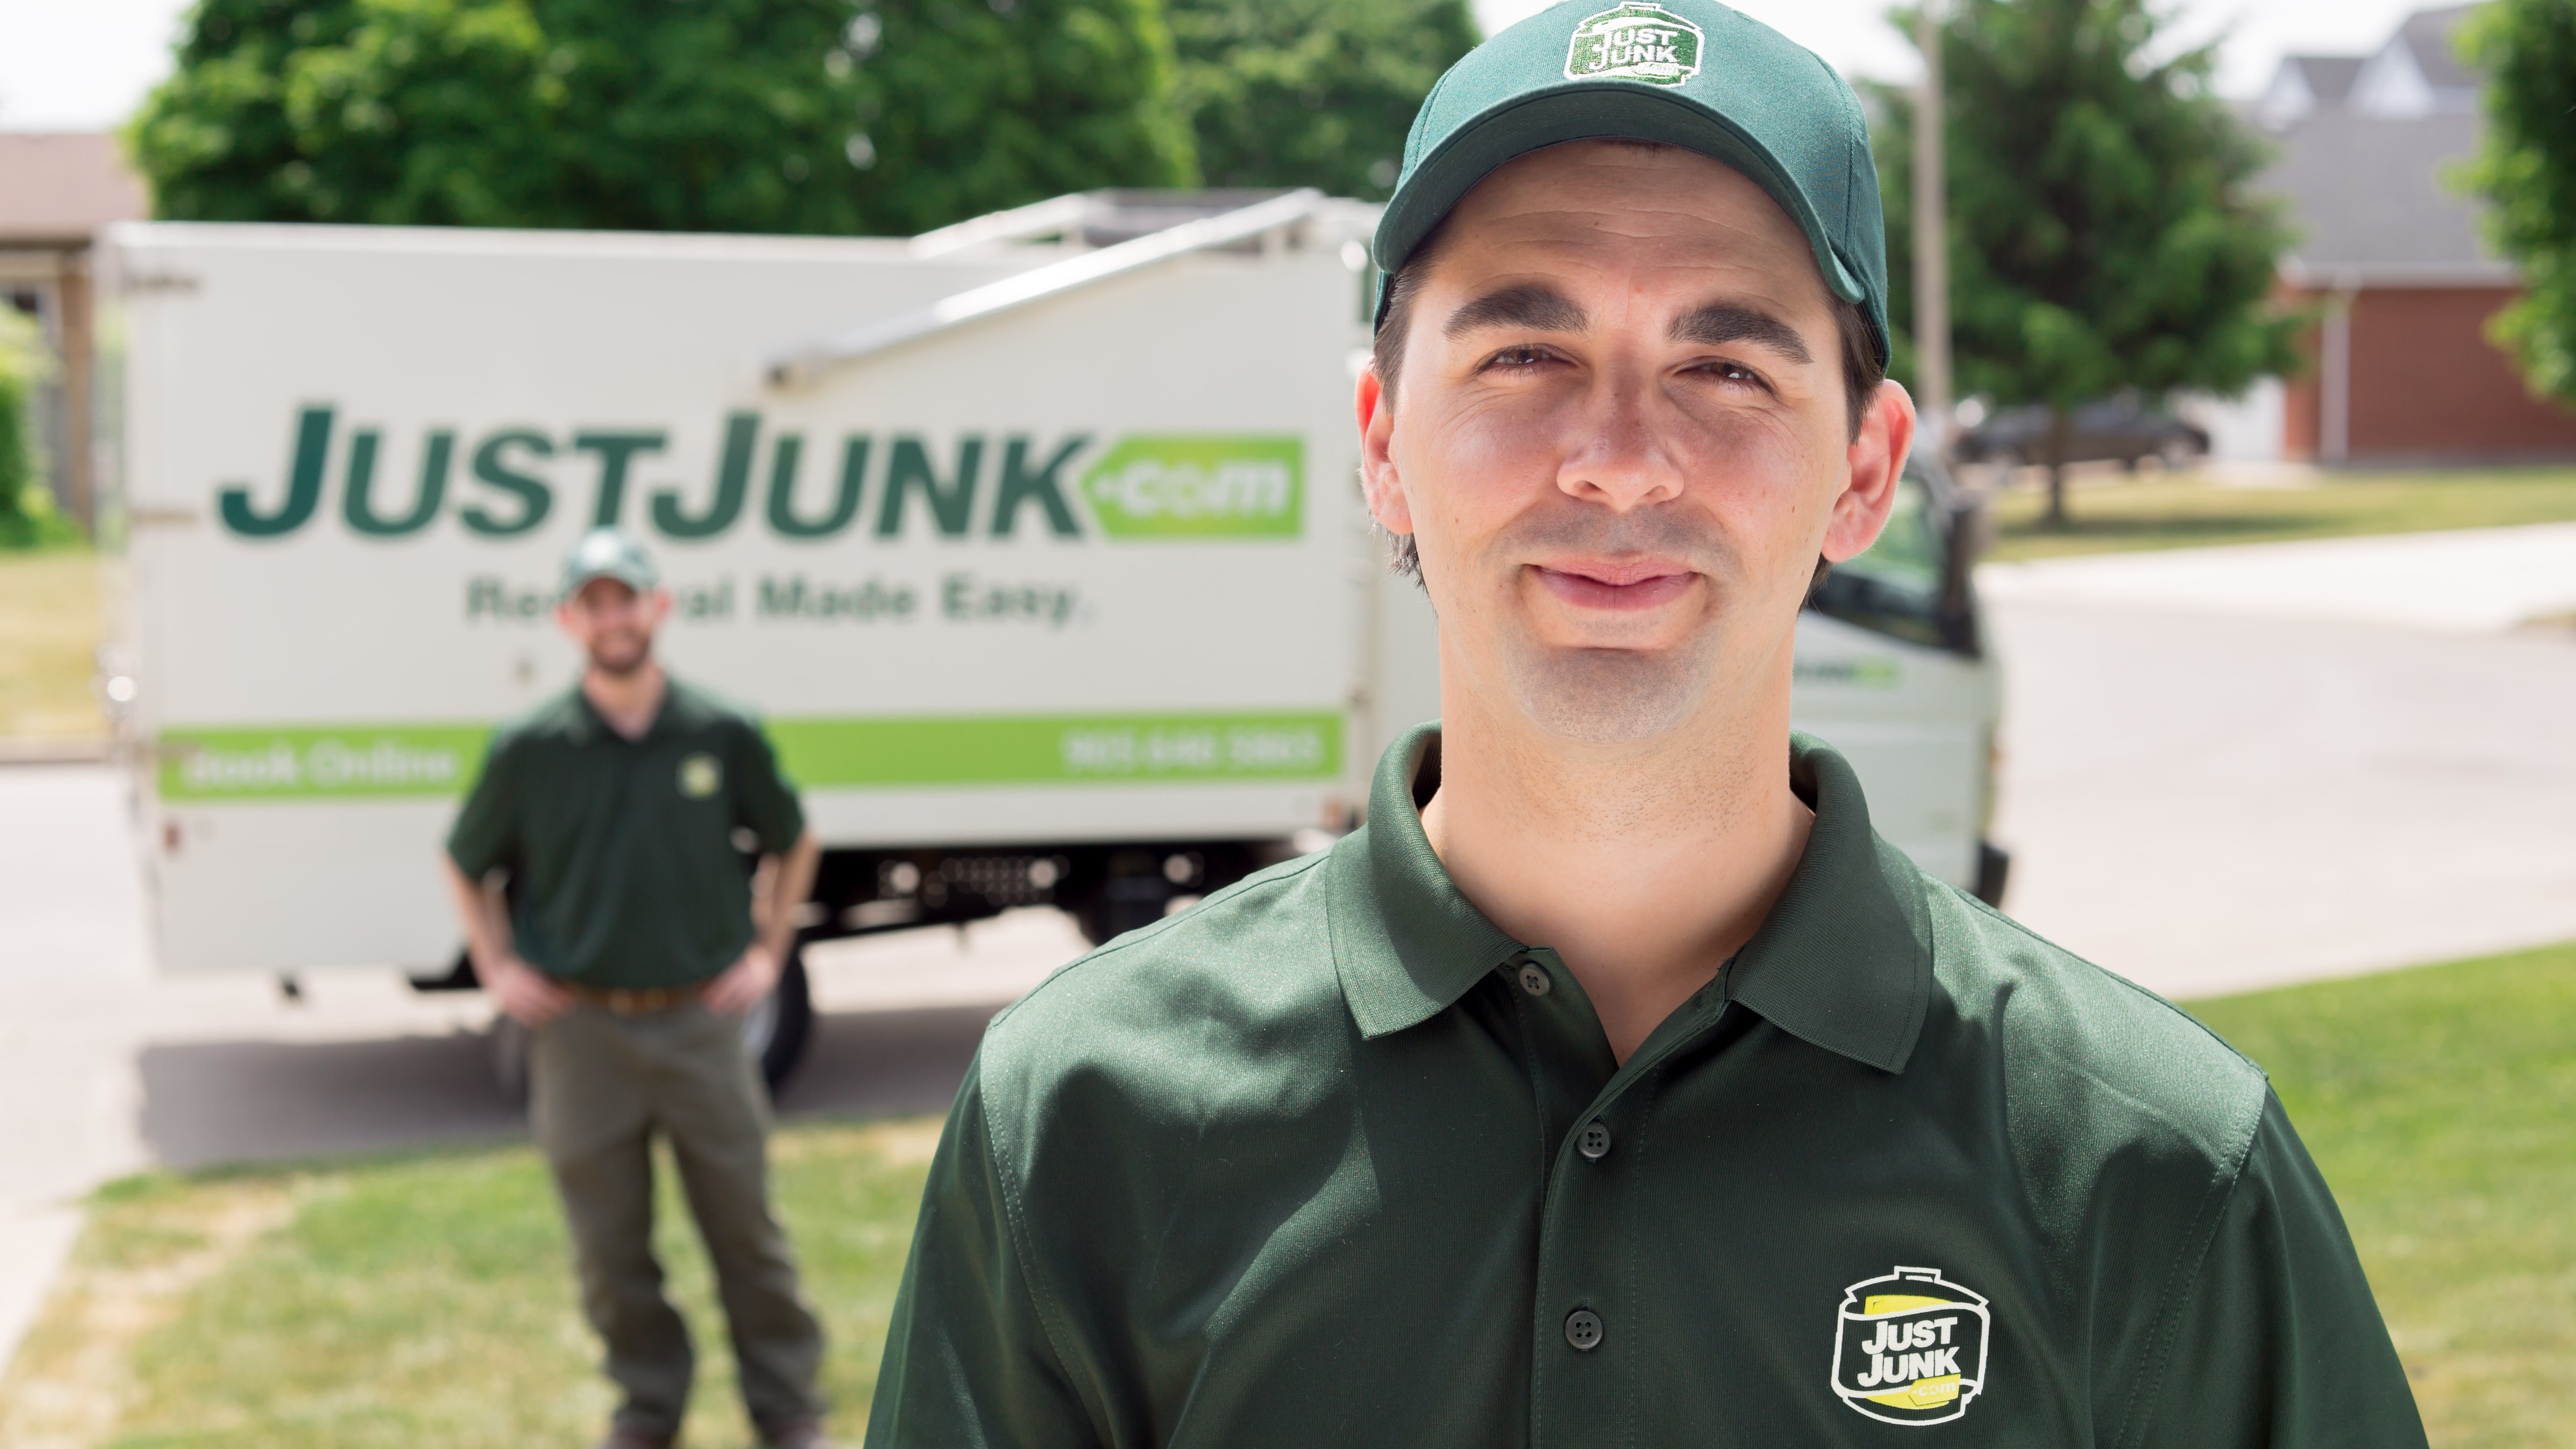 Junk Removal Team in Aurora reunites customer with $200k | JUSTJUNK Featured Image